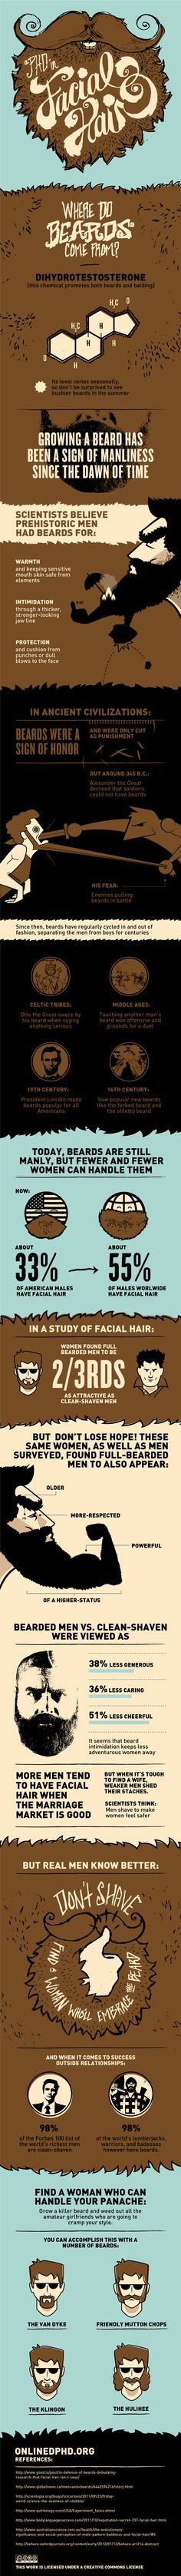 Fear the Beard: Everything You Ever Wanted to Know About Facial Hair (Infographic) : Discovery Channel